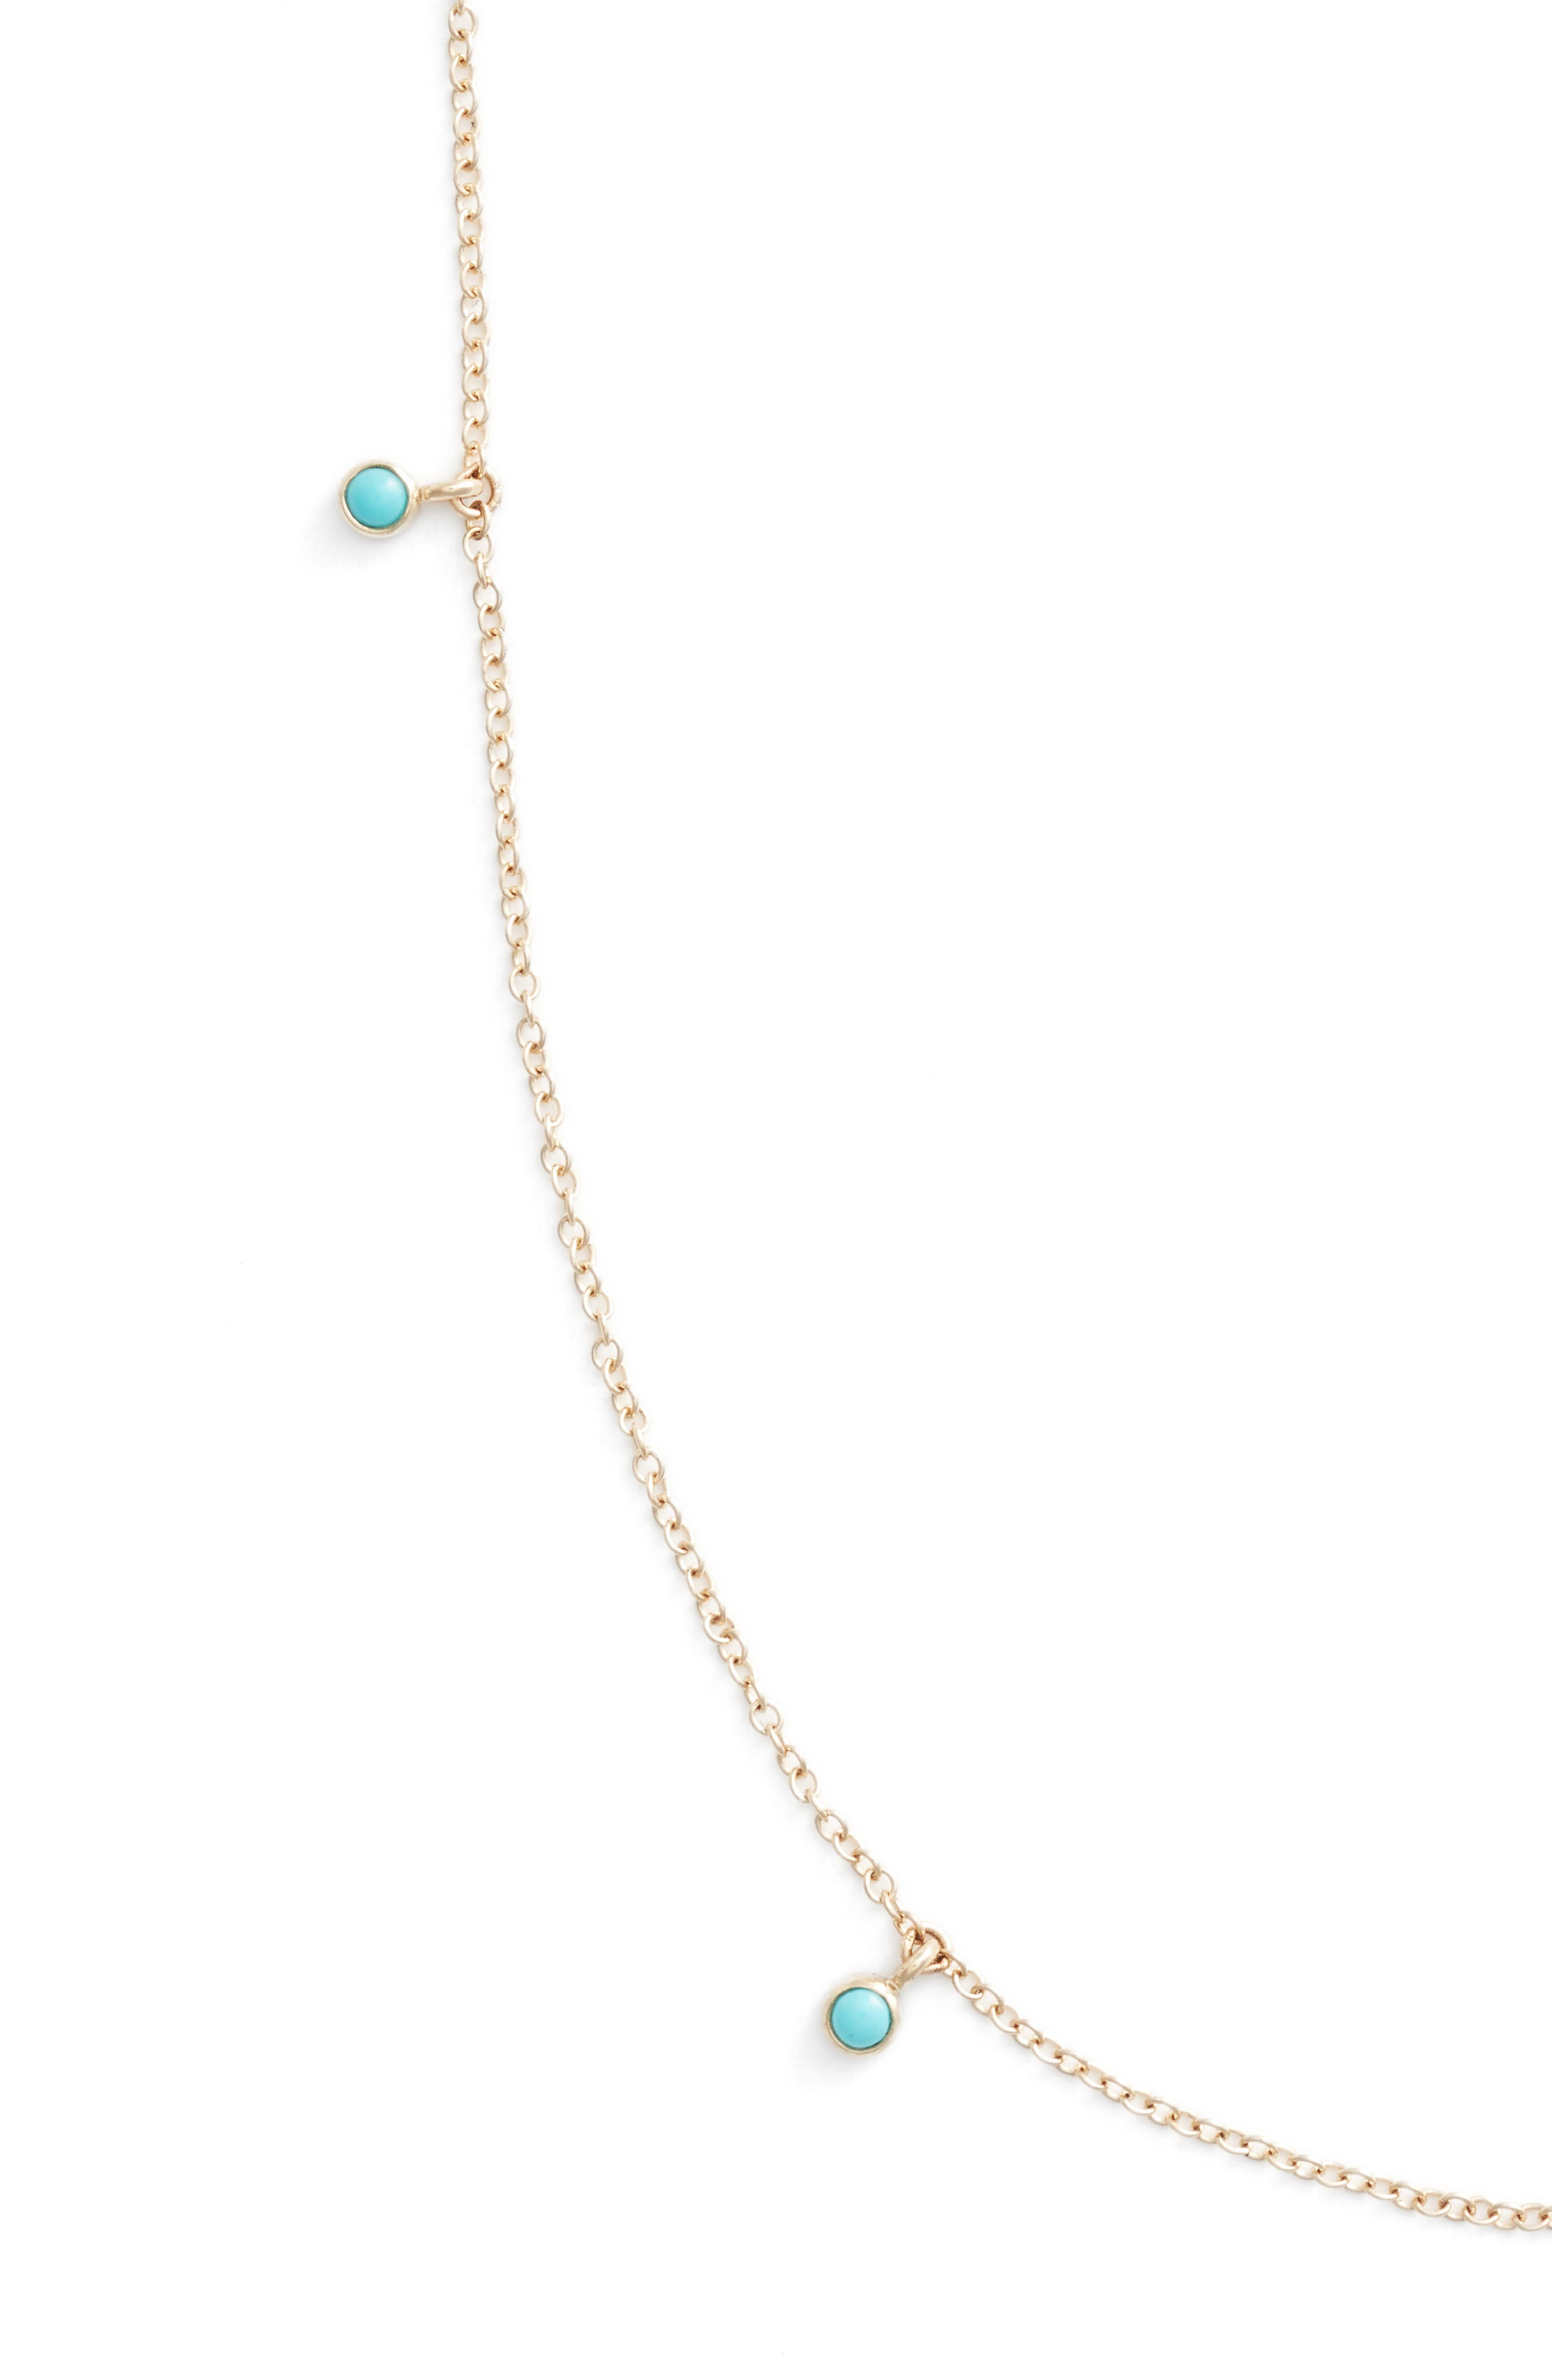 Dangling Turquoise Station Long Necklace,                             Alternate thumbnail 2, color,                             YELLOW GOLD